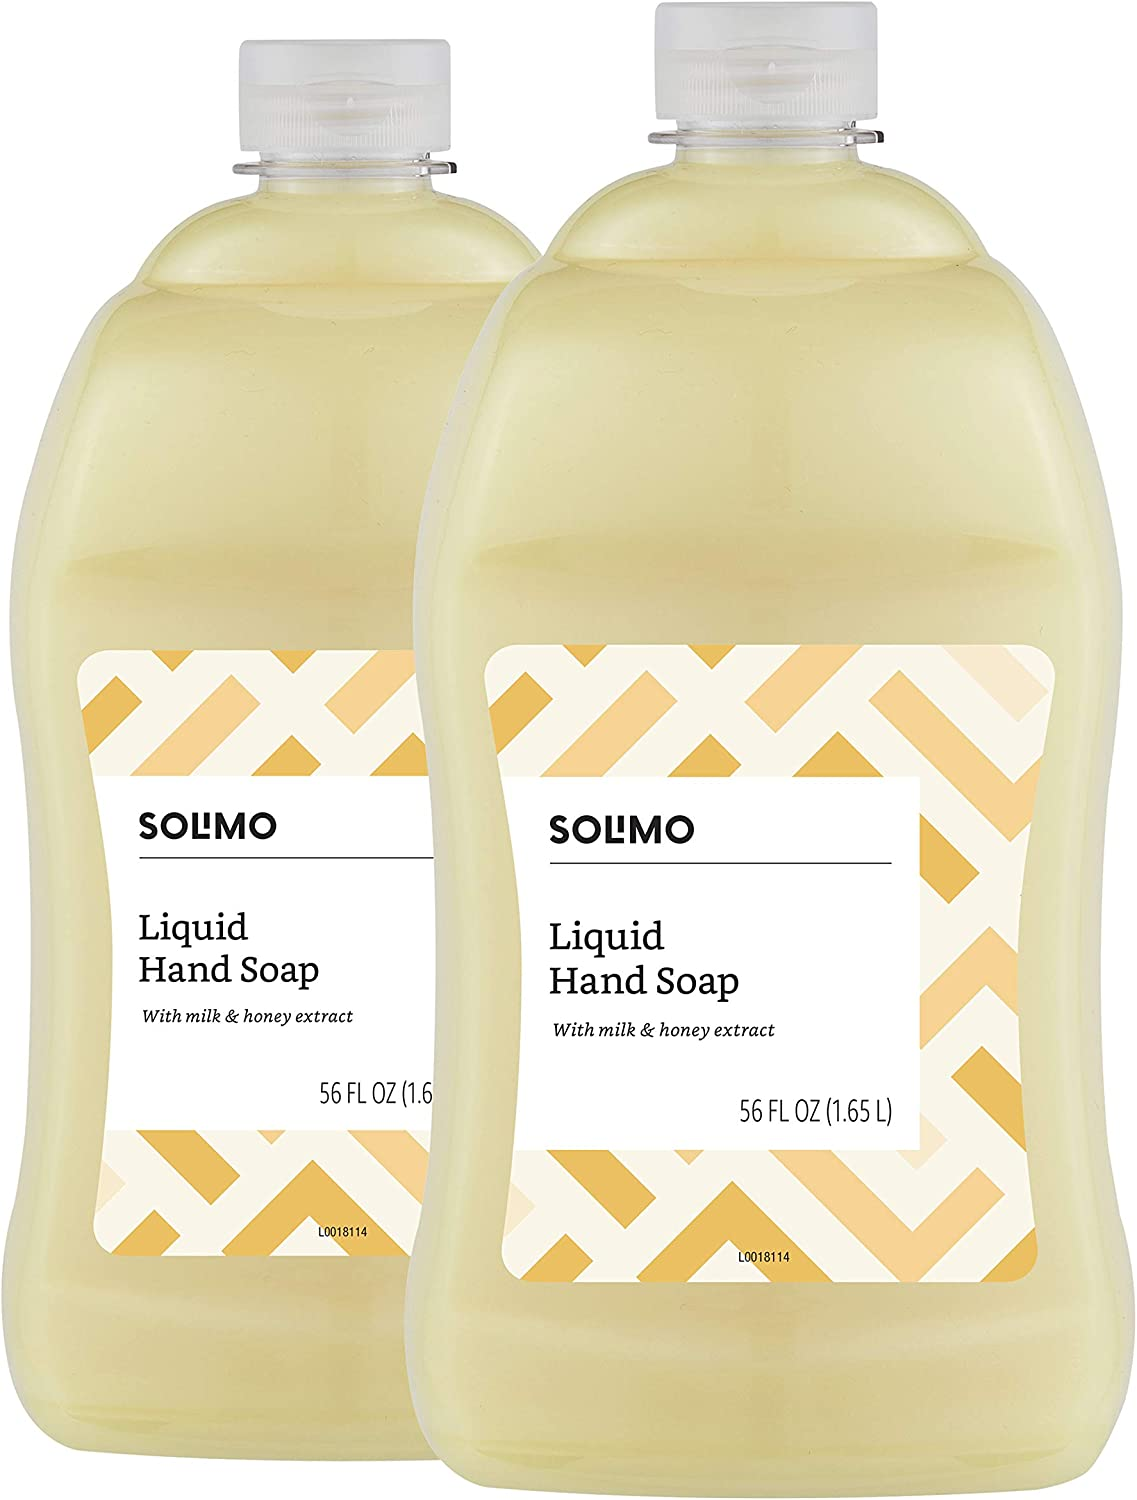 Brand - Solimo Liquid Hand Soap Refill, Milk and Honey Scent, Triclosan-Free, 56 Fluid Ounces, Pack of 2 : Health & Personal Care